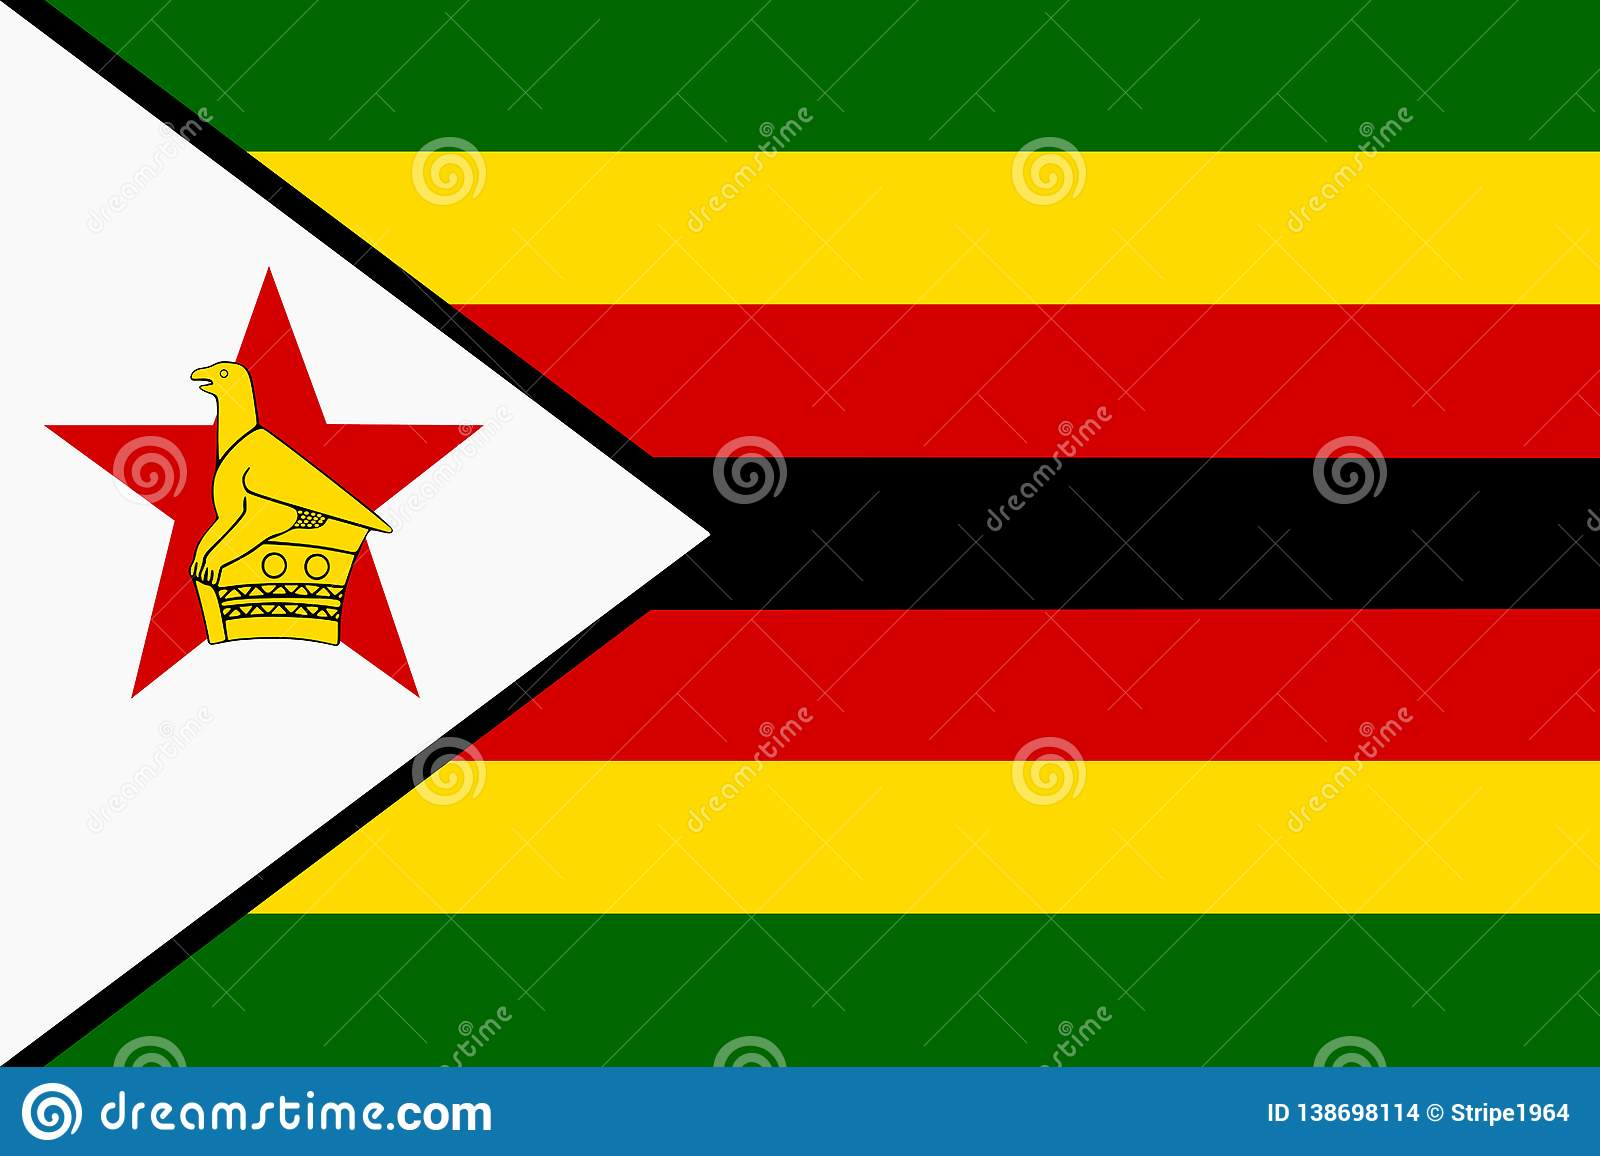 Background Illustration Flag Of Zimbabwe Red Black Yellow White ...